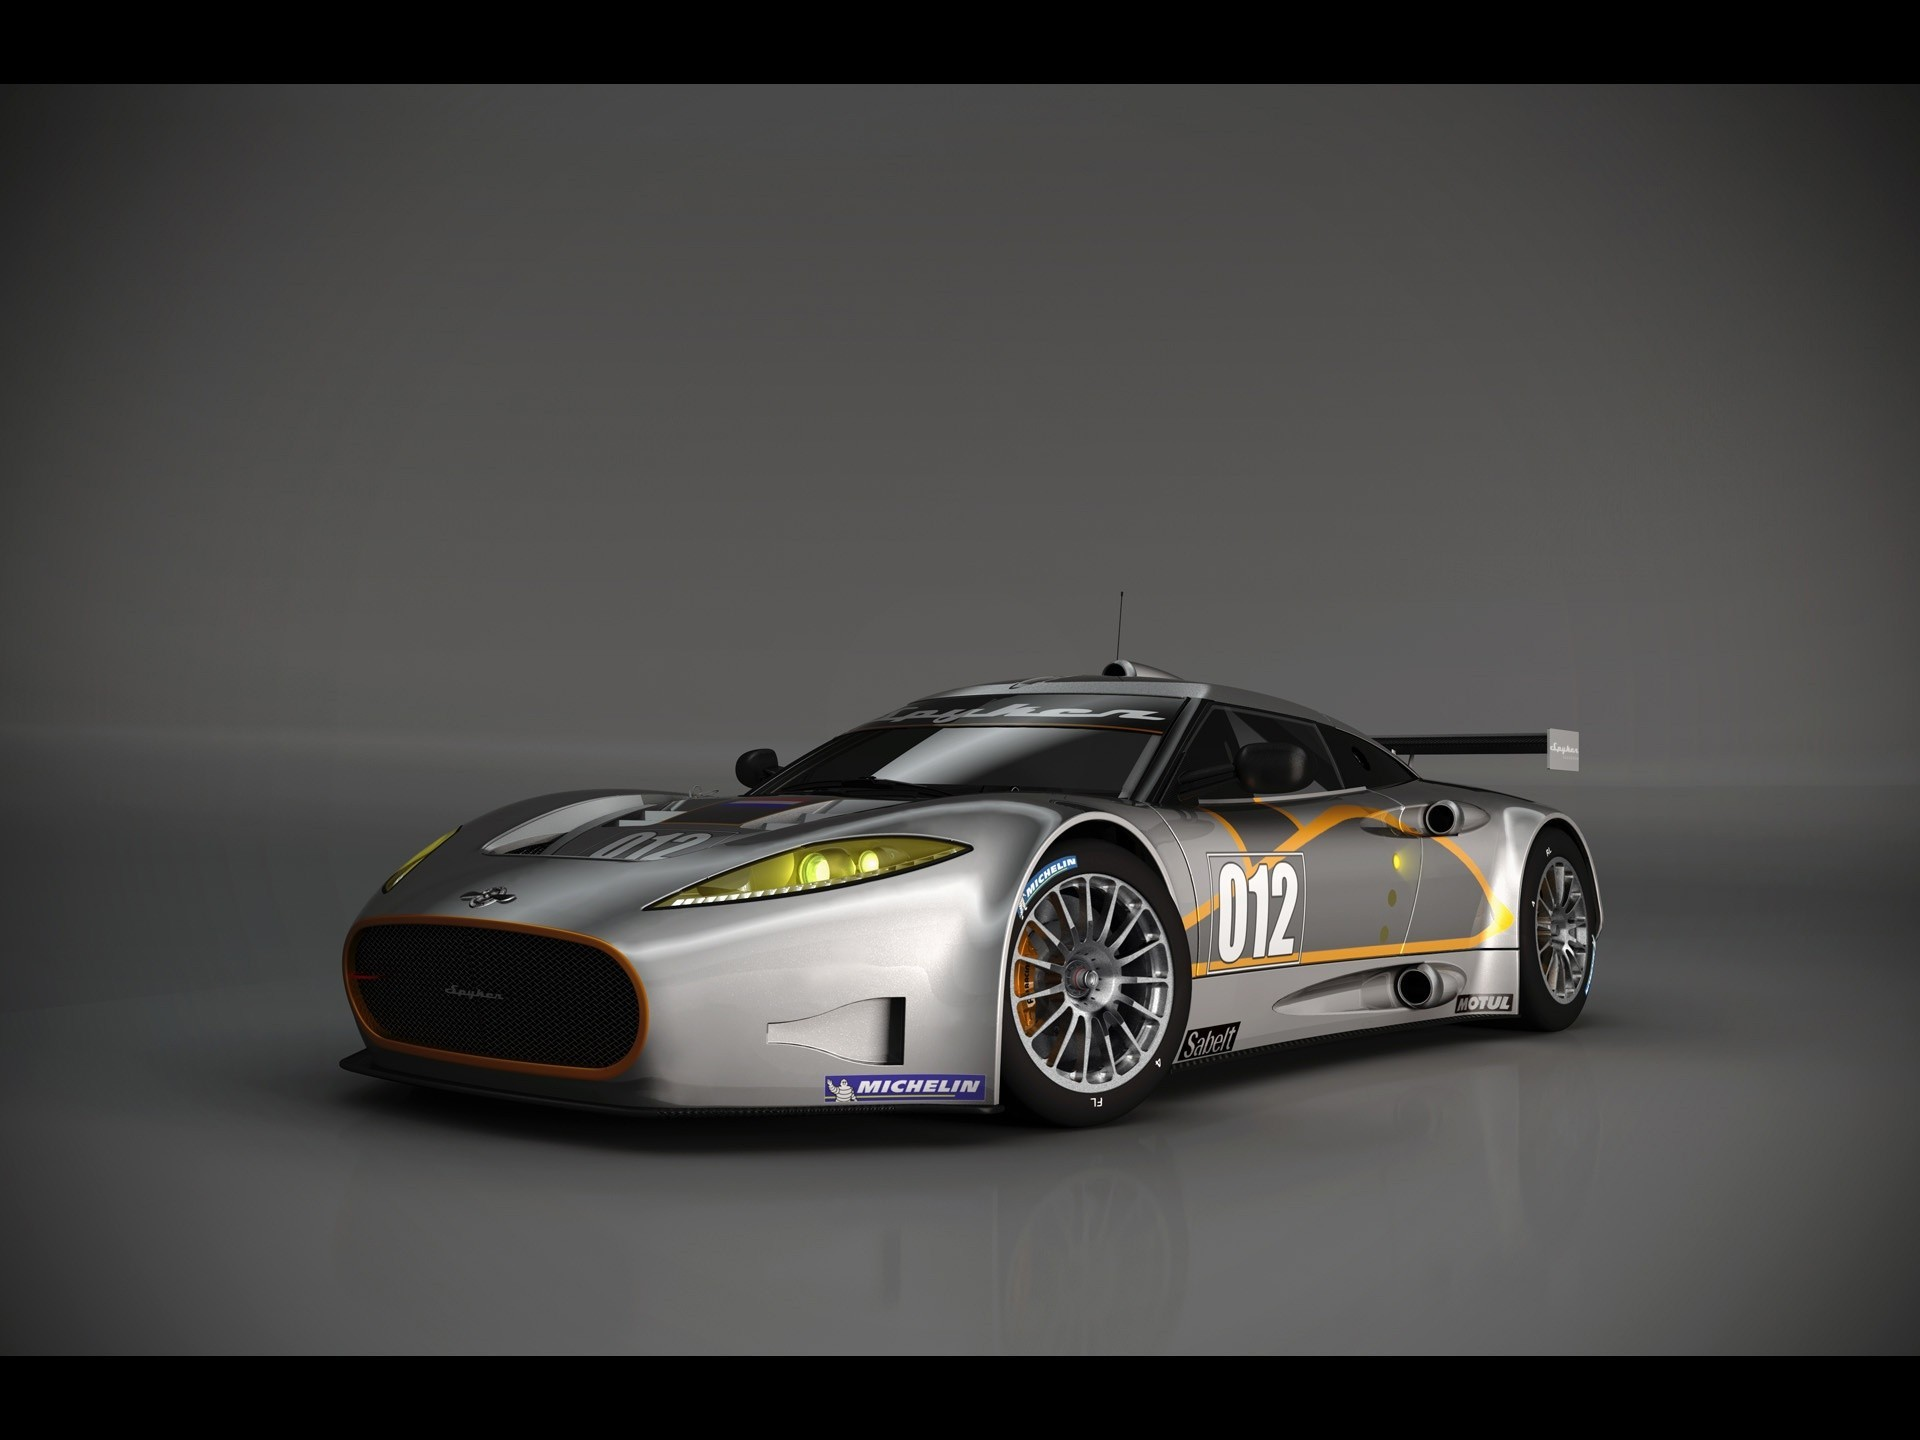 cars Spyker Supercars HD Wallpaper